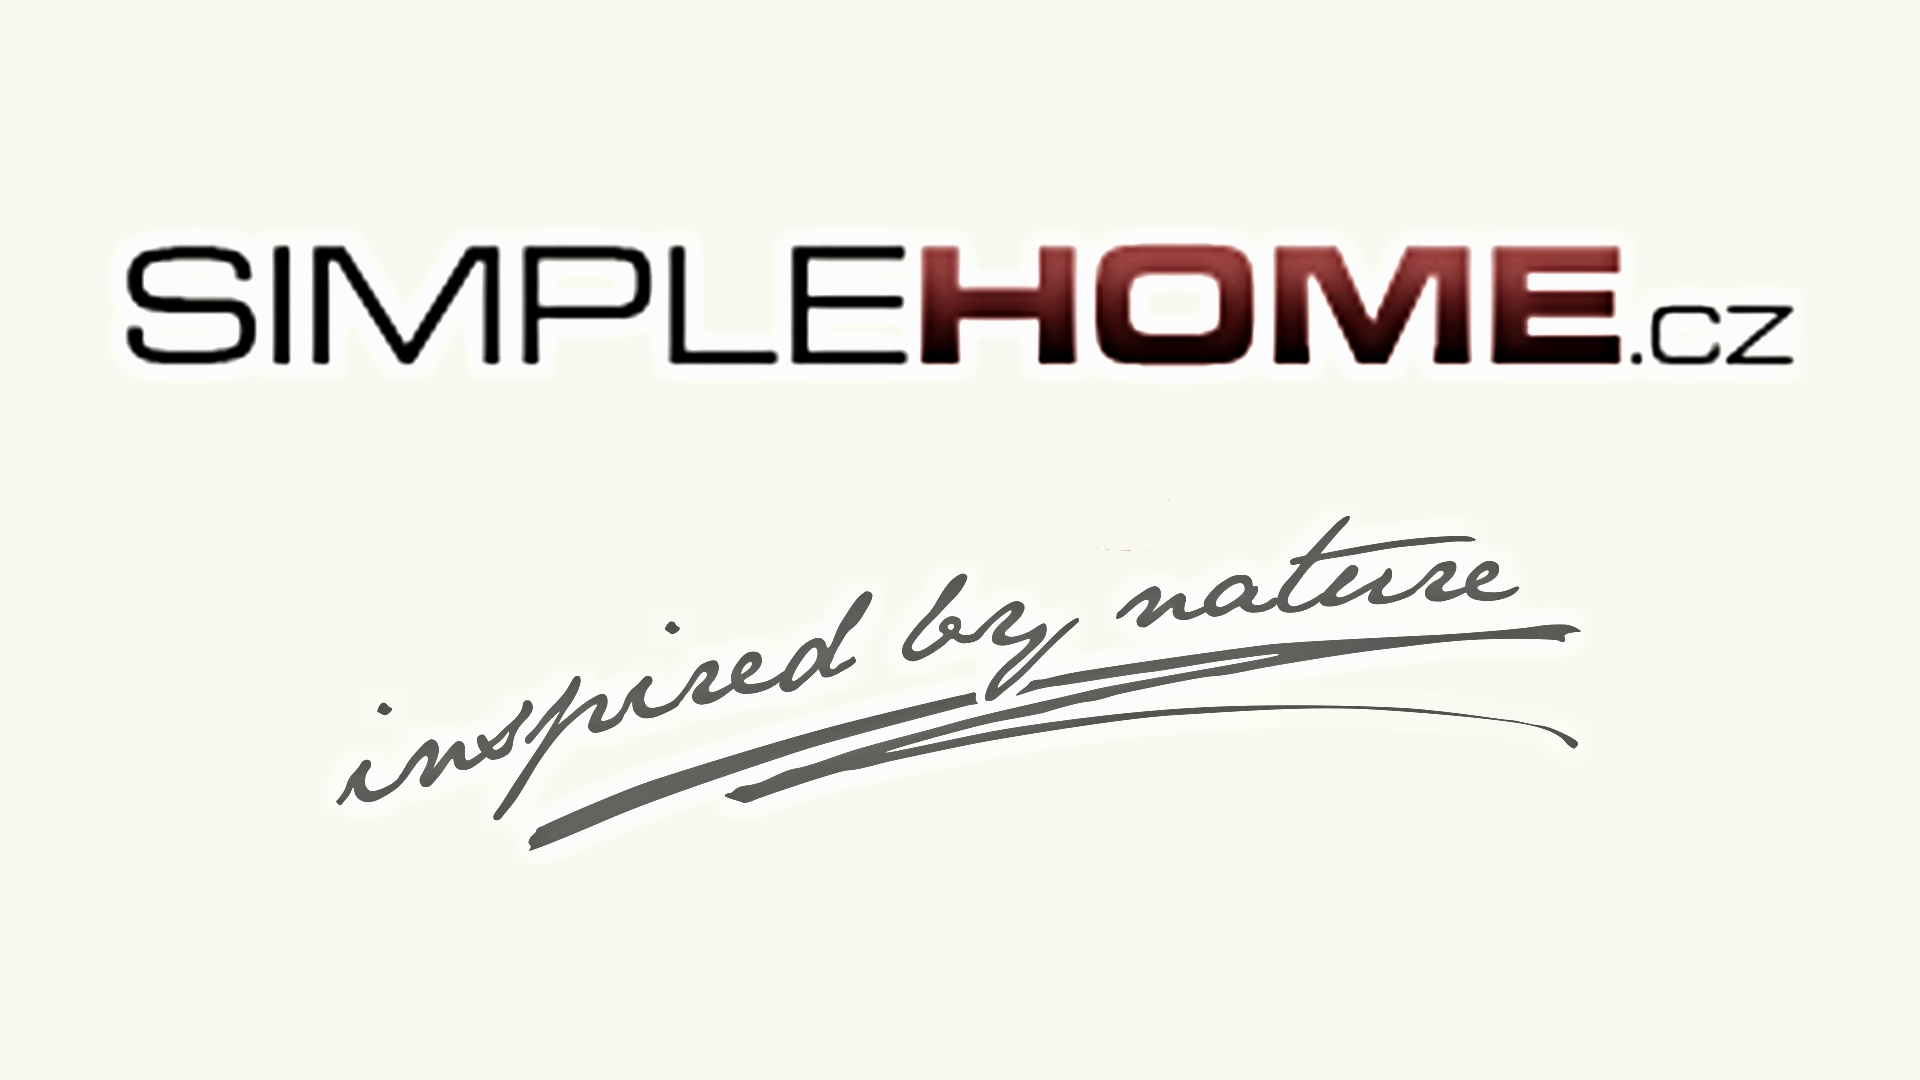 SimpleHome